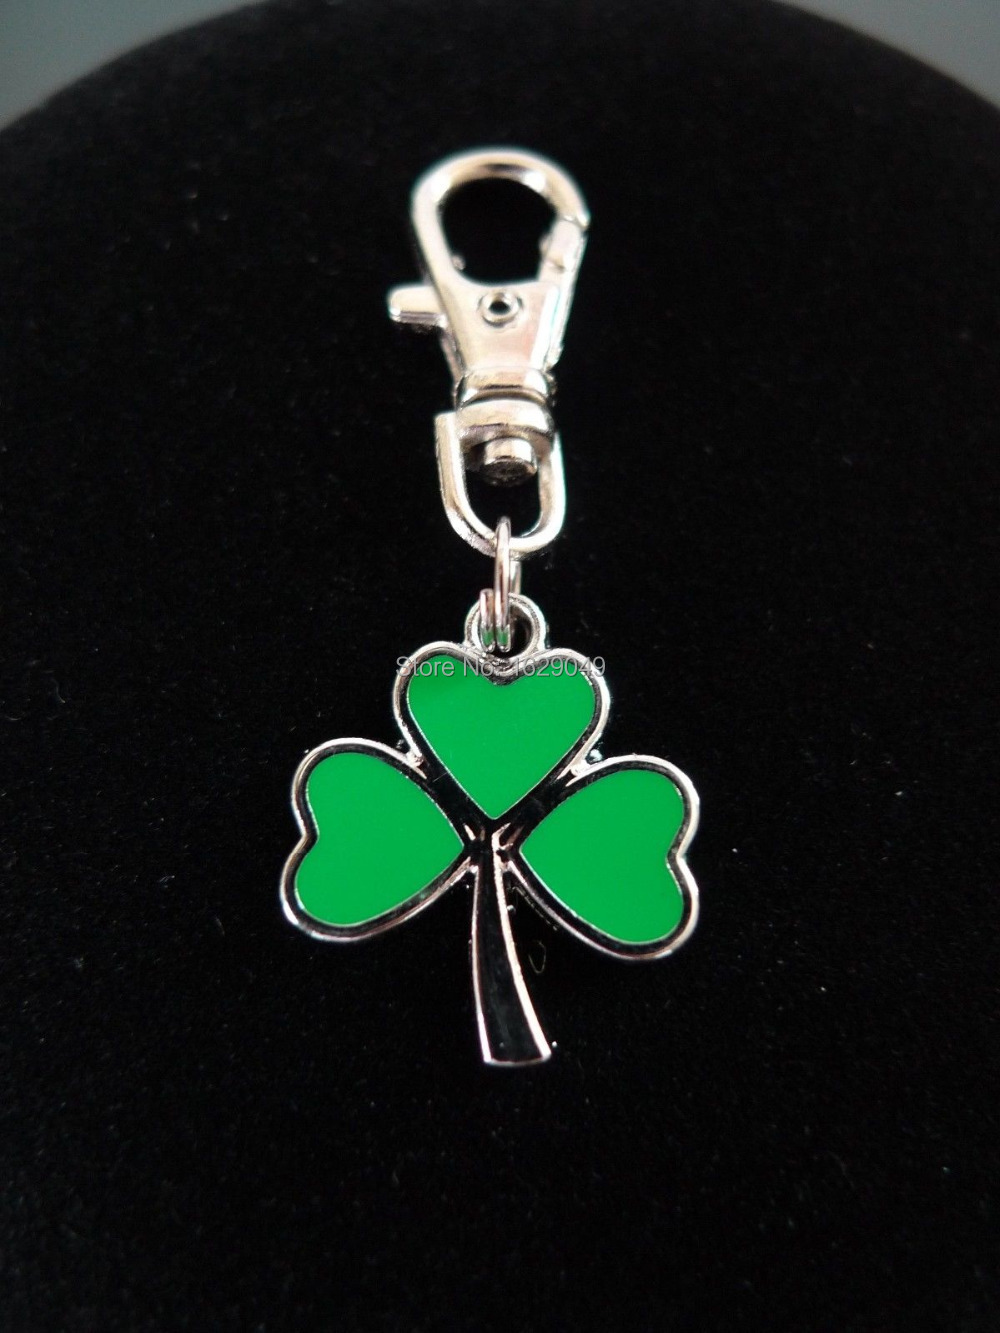 Fashion Vintage Silvers GREEN 3-LEAF CLOVER IRISH SHAMROCK TRINITY Lobster Swivel Clasp Key Chain Ring Accessories 20PCS Y507(China (Mainland))